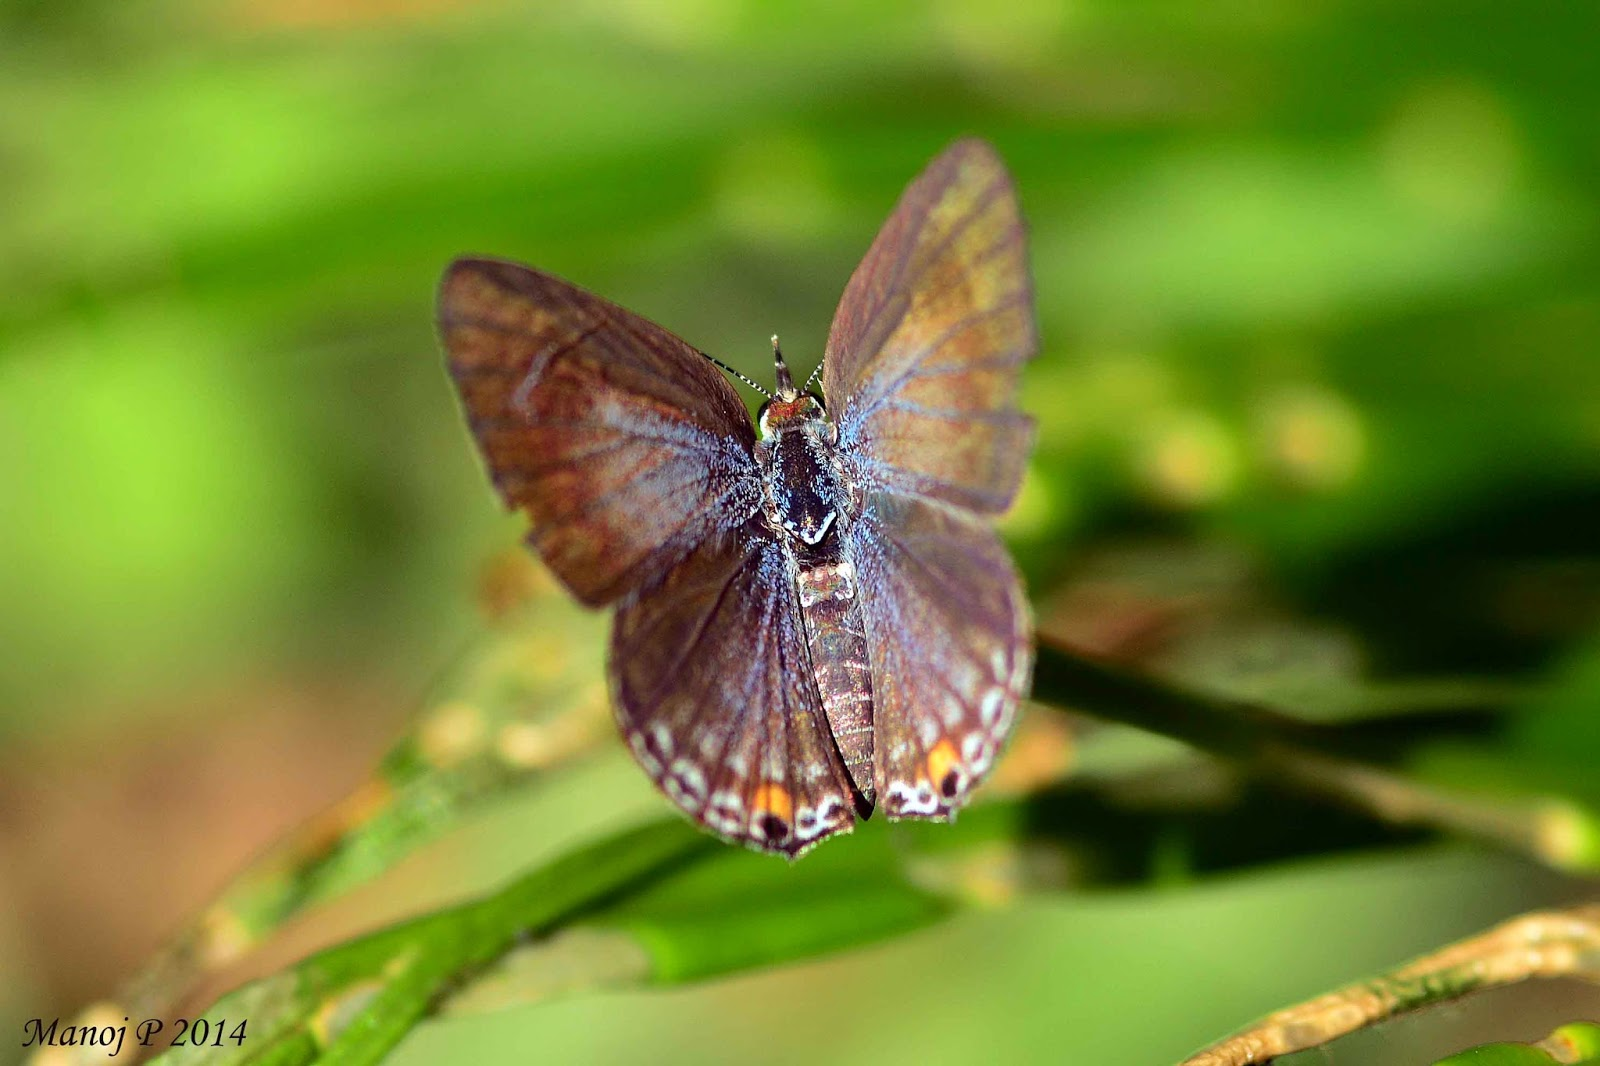 Plains Cupid - Chilades pandava